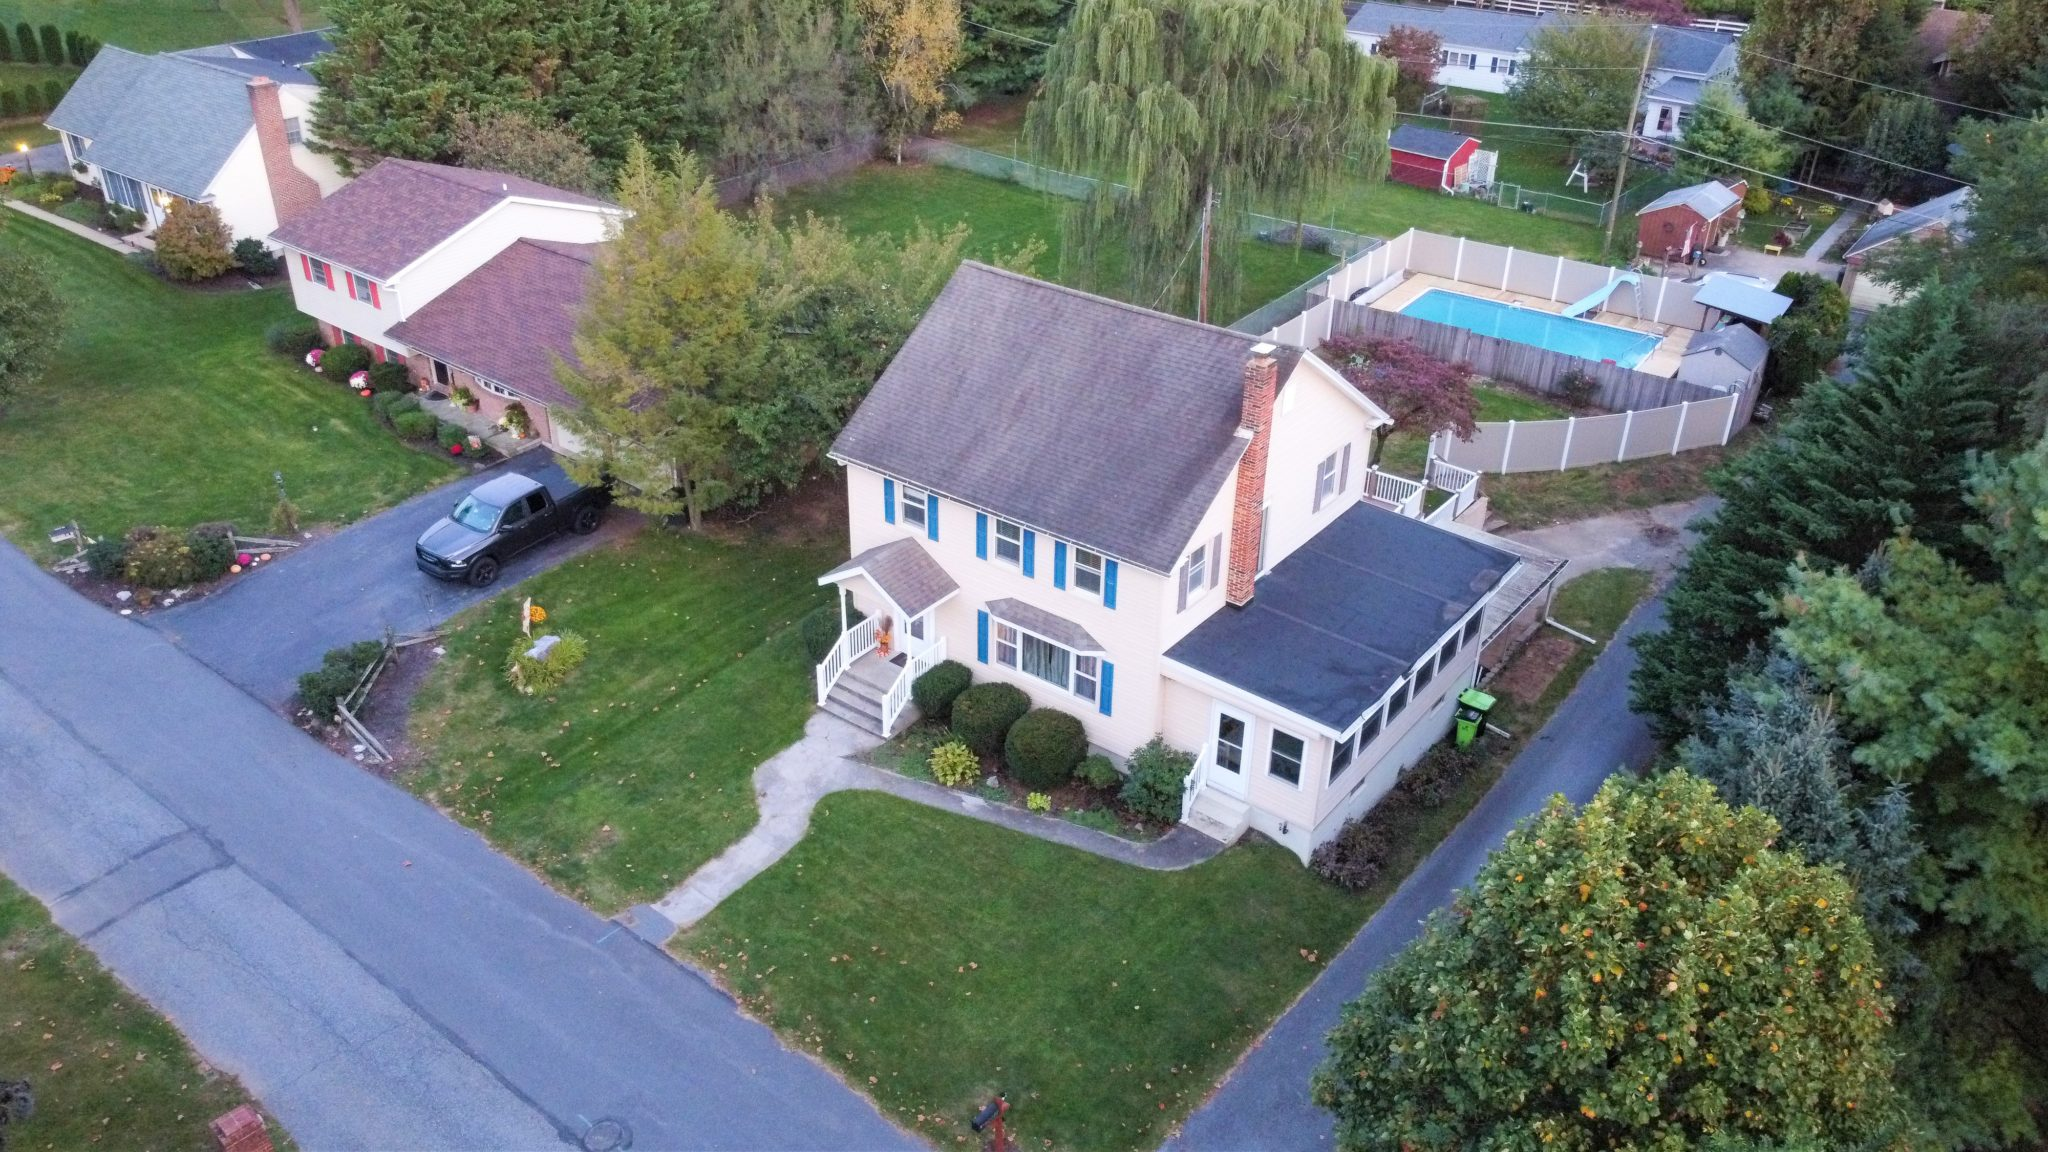 2022 Kline st - front overhead view of charming single family home